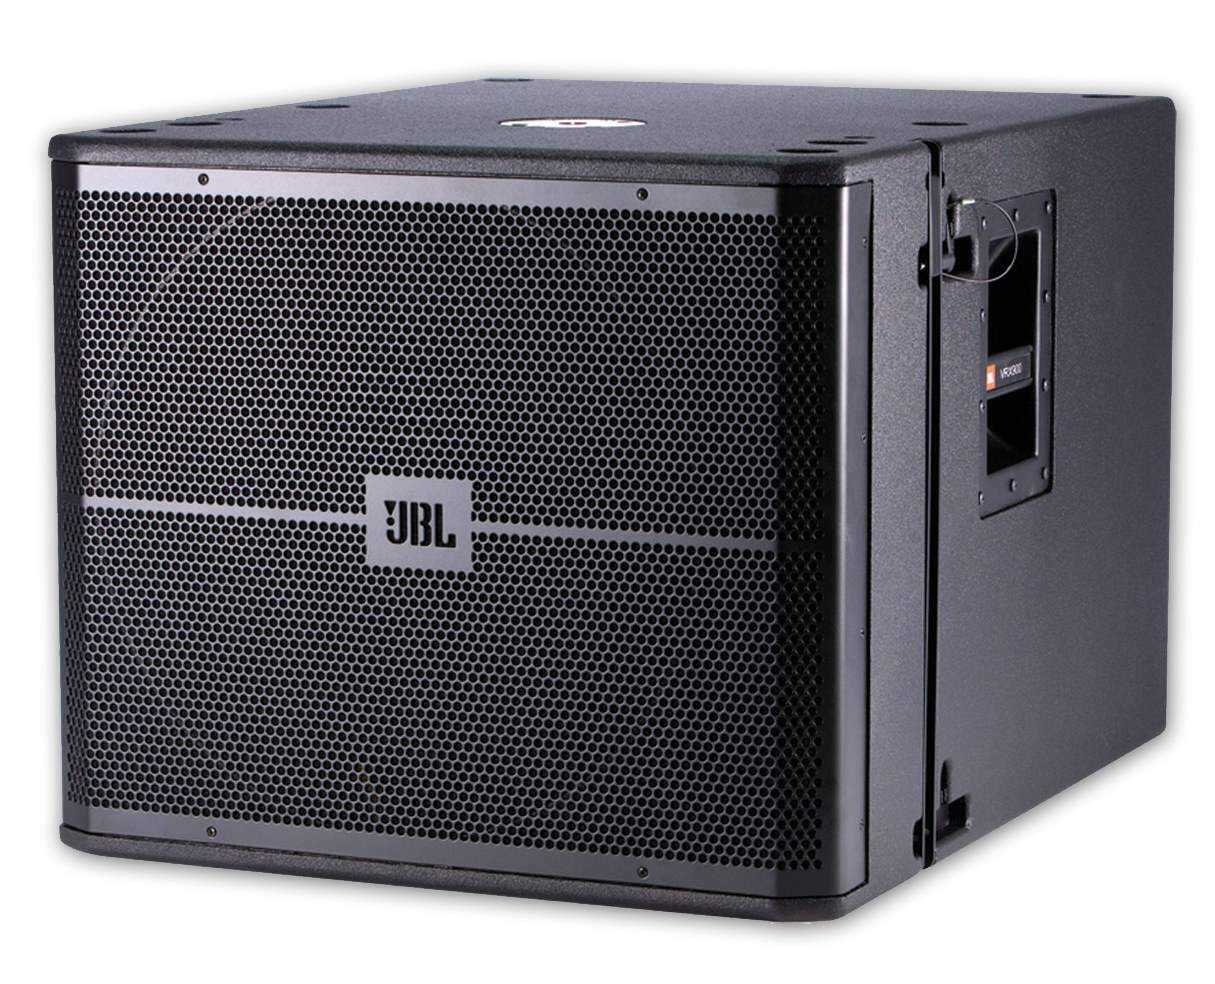 JBL VRX918SP Powered Flying Sub VRX 918SP VRX918. Buy it now for 1499.99